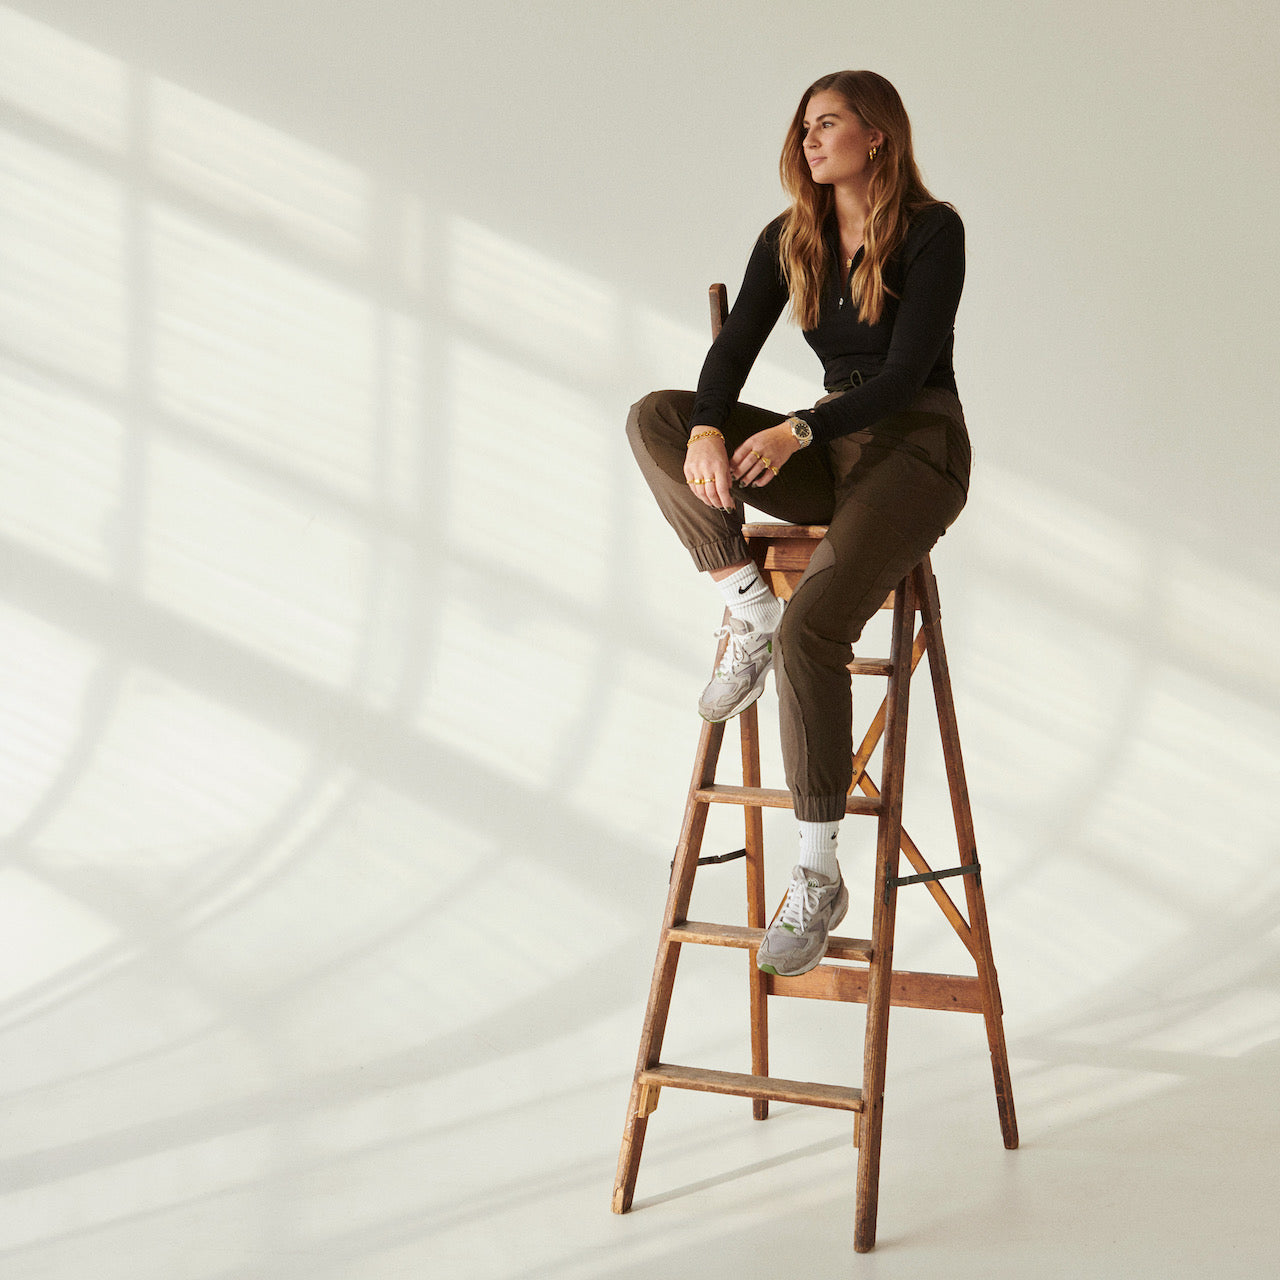 Camille Brinch sitting on top of a ladder wearing a dark top and olive pants while showcasing some of her rings, necklaces, and earrings.